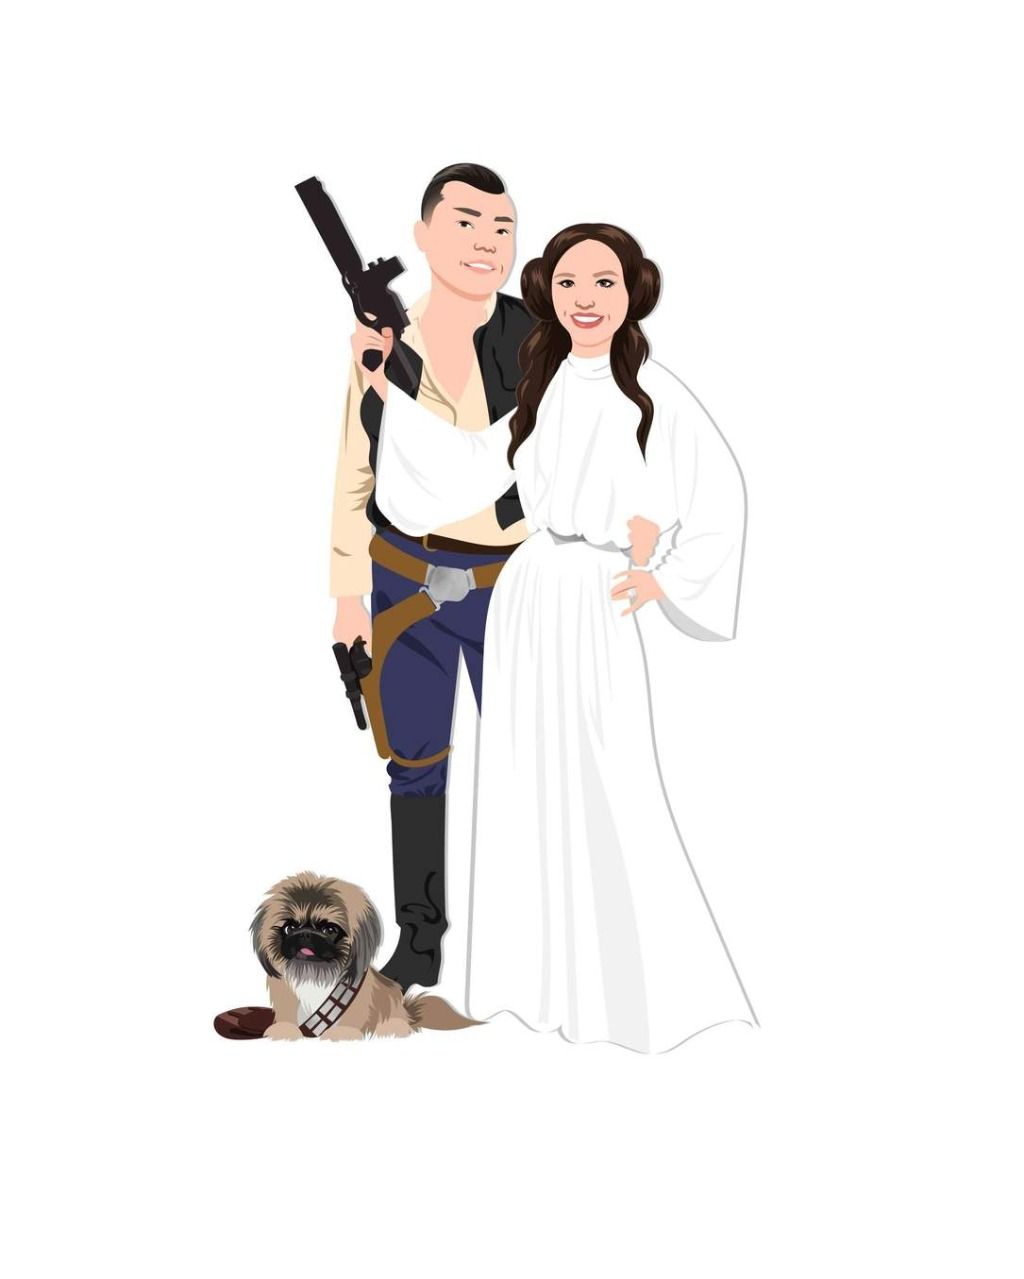 For all the star wars fans out there - this fun, themed digital couple portrait artwork is the perfect gift for your first anniversary